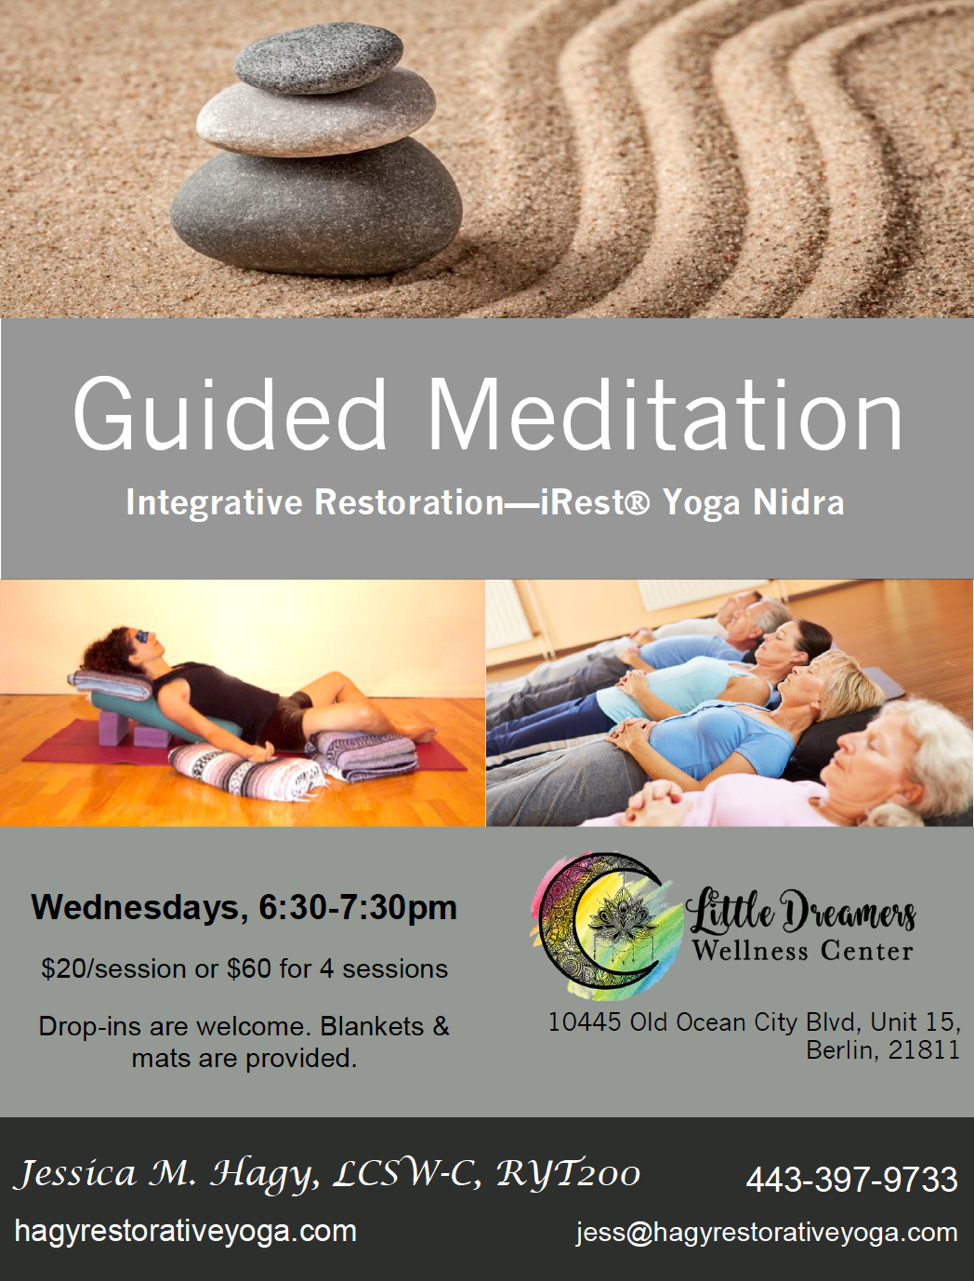 Guided Meditation Irest Yoga Nidra Jessica Hagy Restorative Yoga